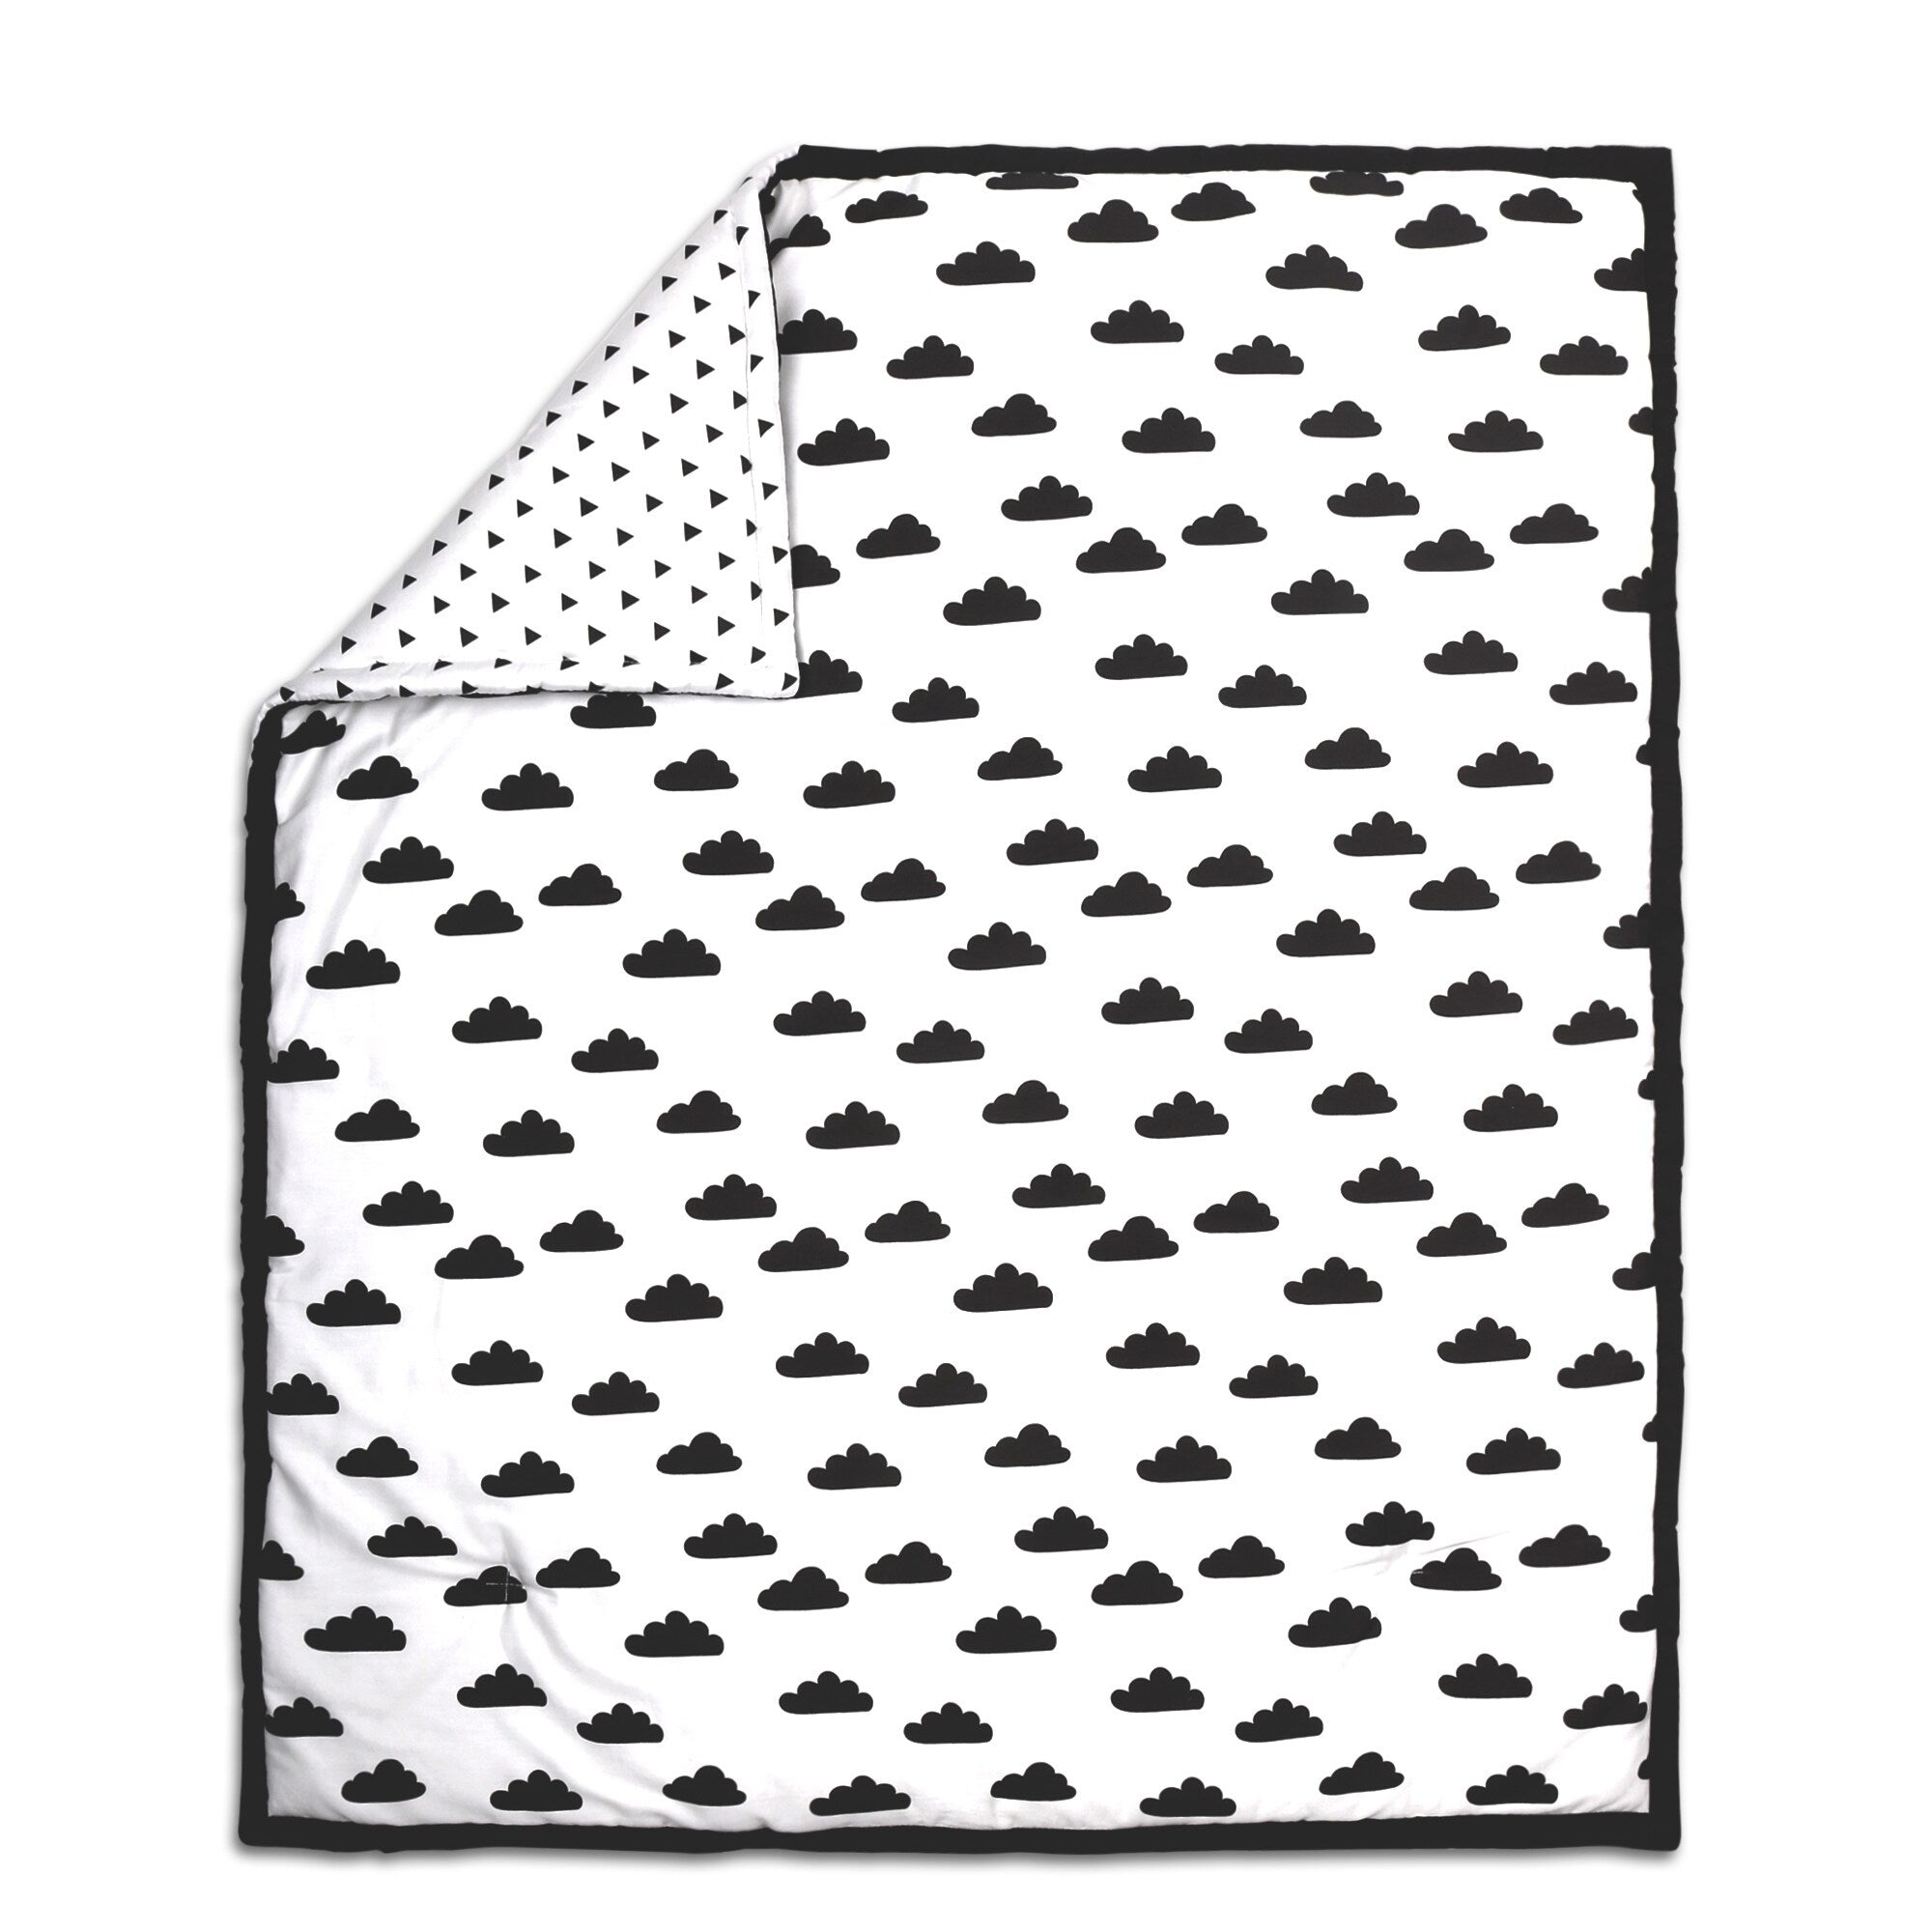 Cloud Print Cotton Quilt in Black/White White Nature Neutral - Diamond Home USA